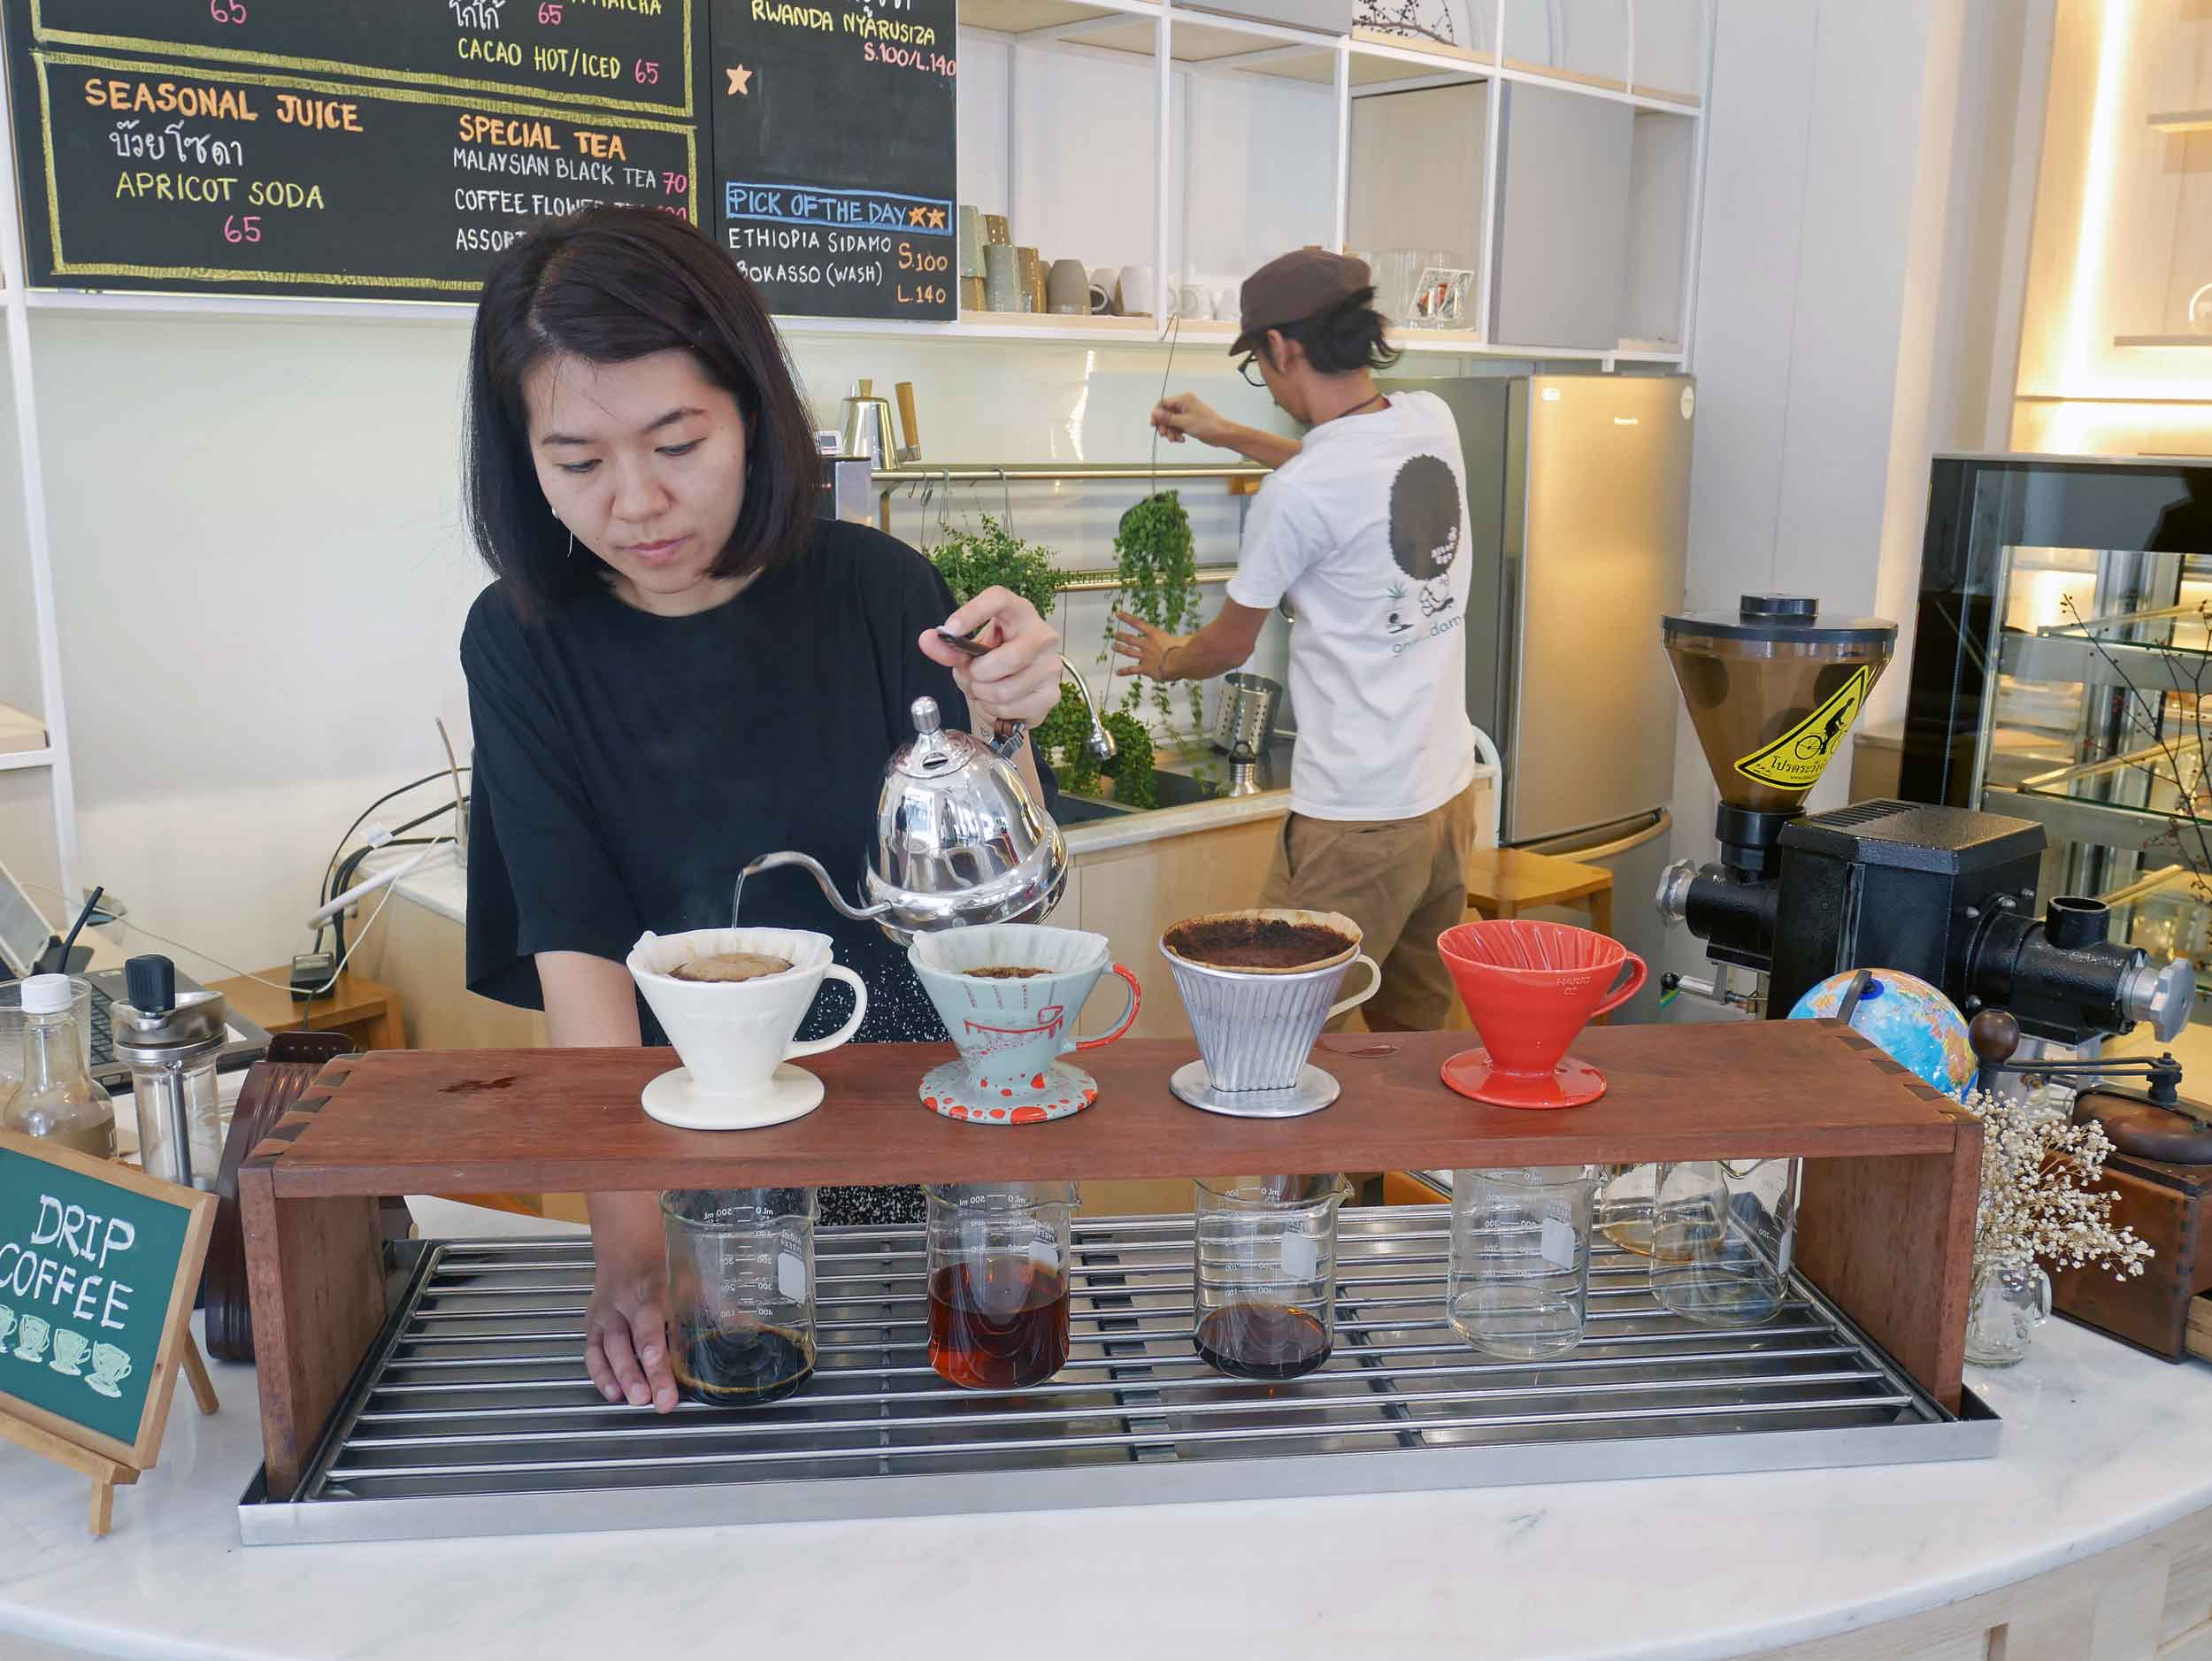 Our lovely barista carefully and beautifully preparing our cold brew coffees at Bangkok's Gallery Drip.